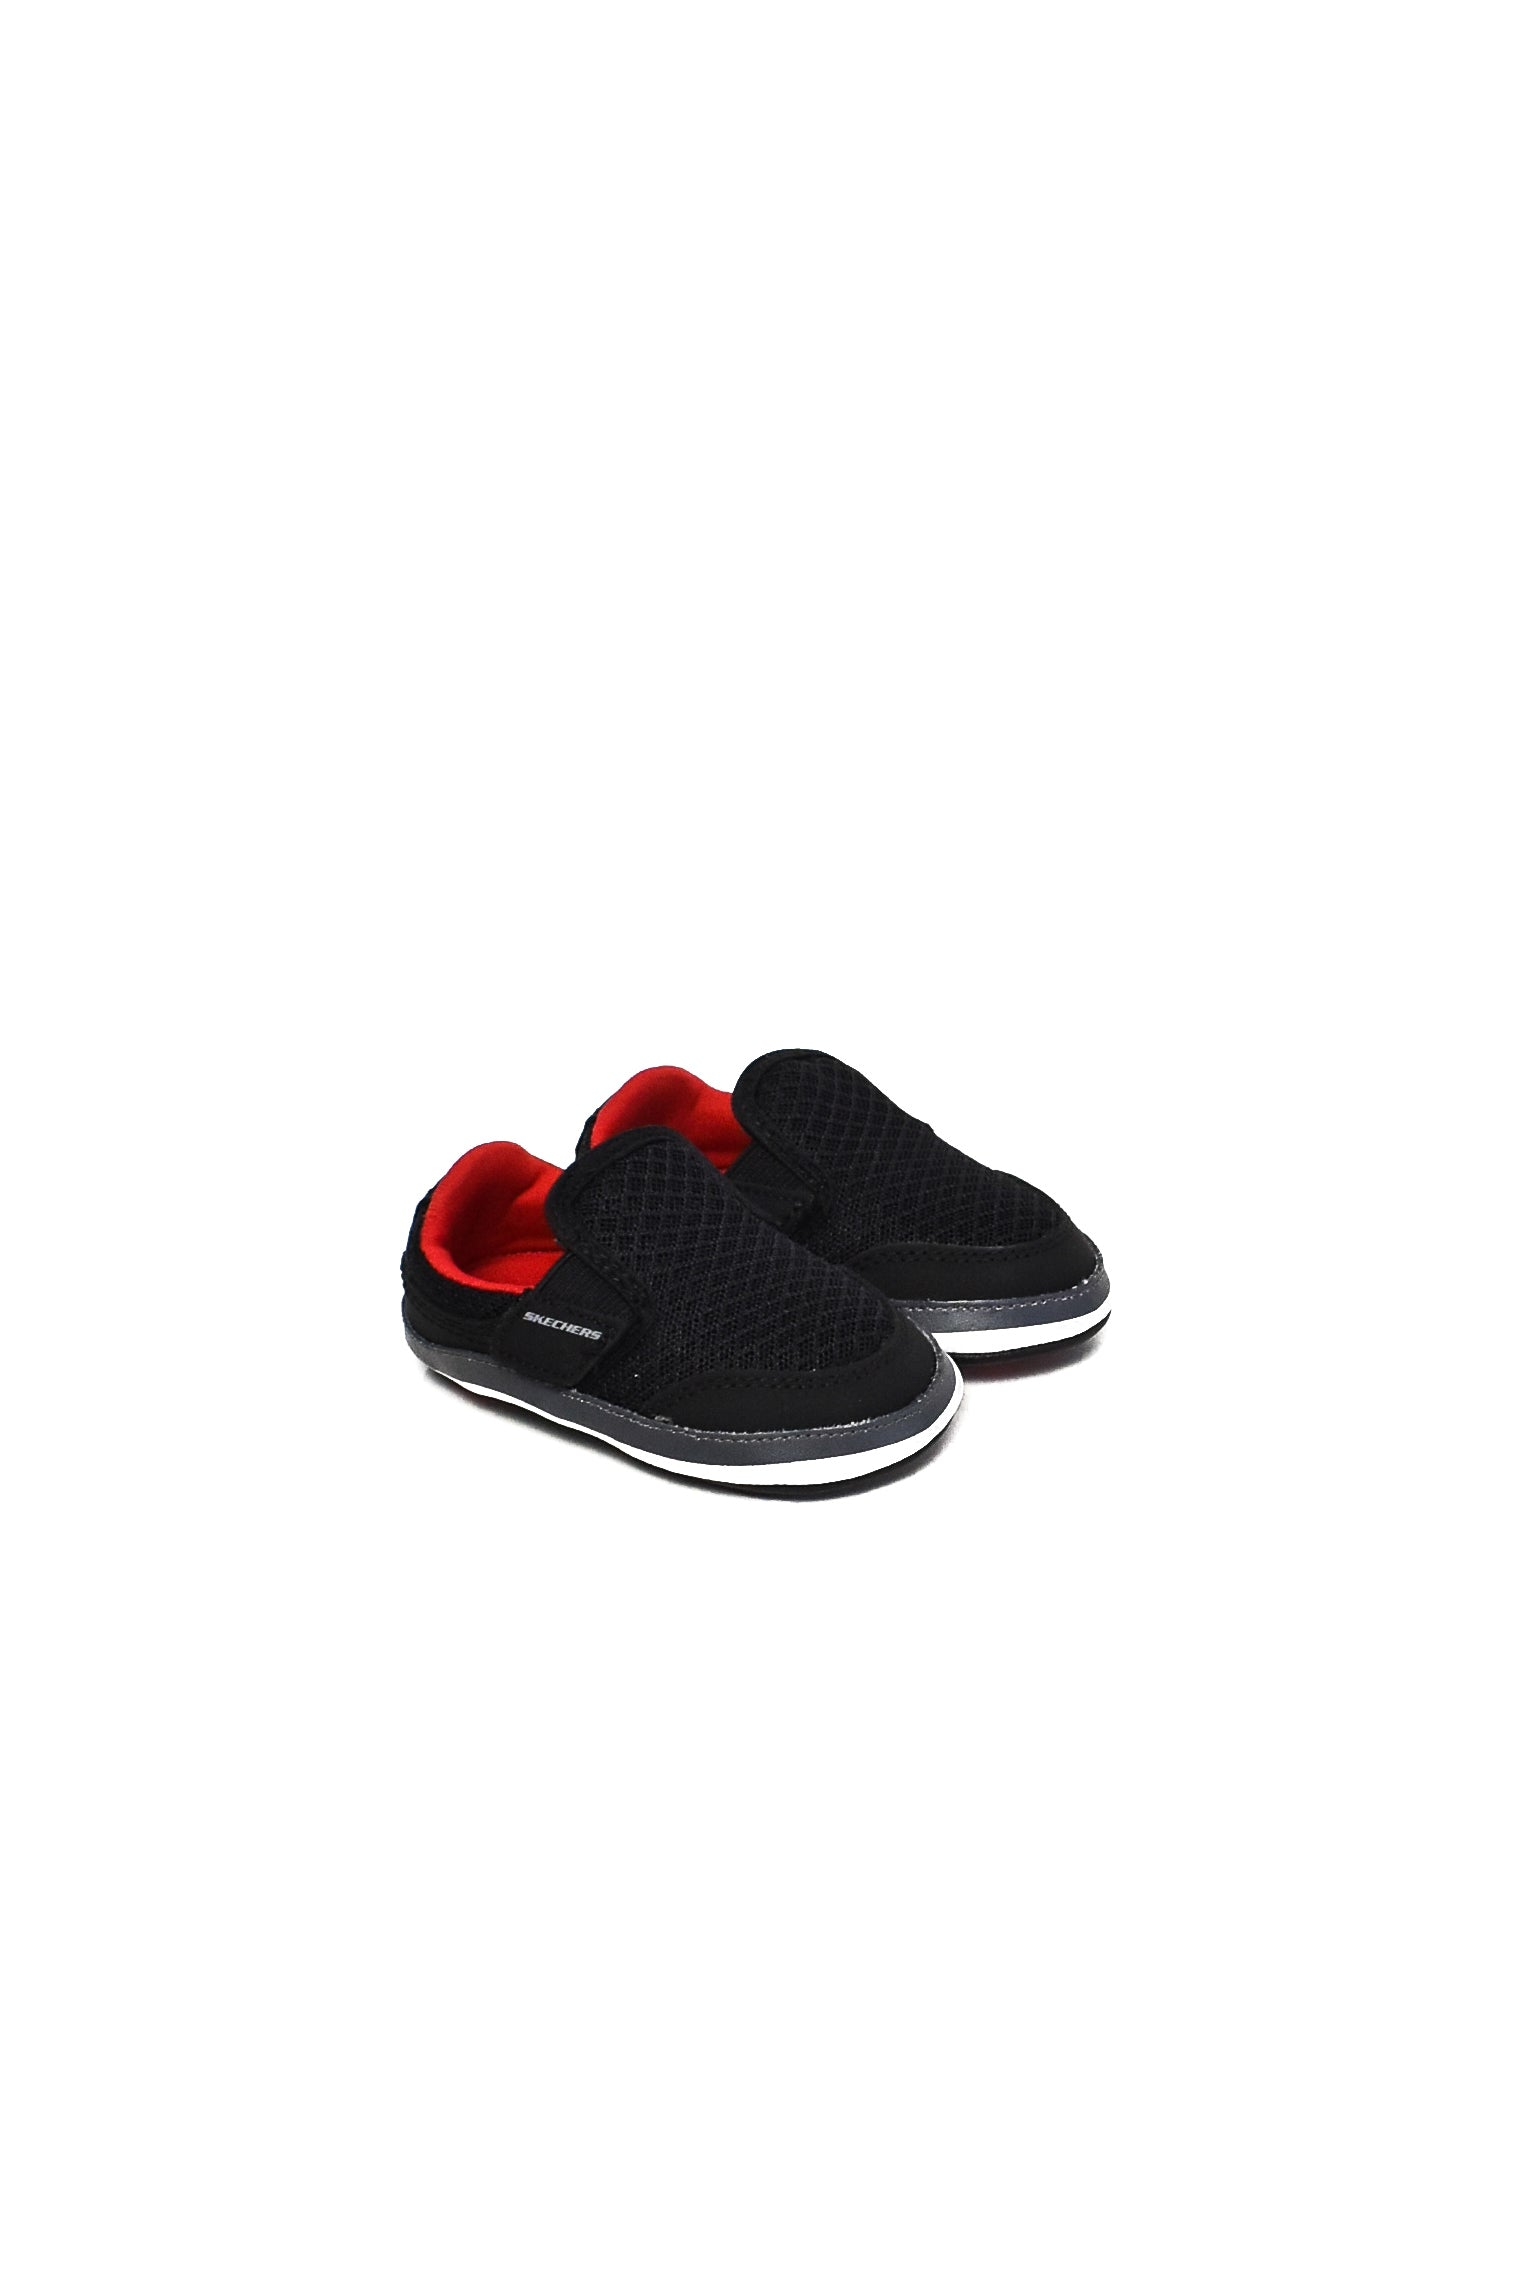 10007730 Skechers Baby~ Shoes 12M (EU 18.5) at Retykle